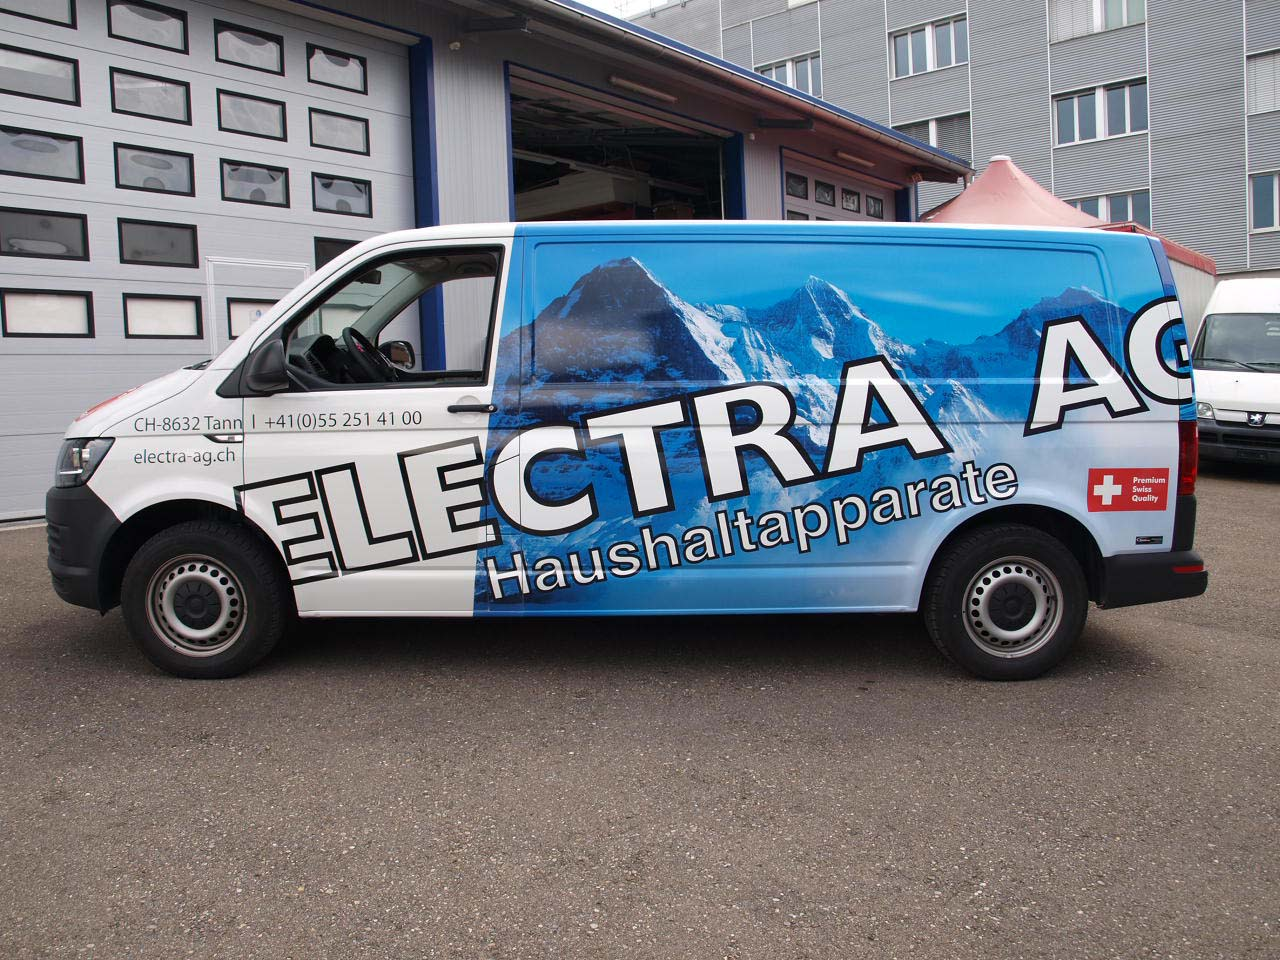 electra-ag.ch